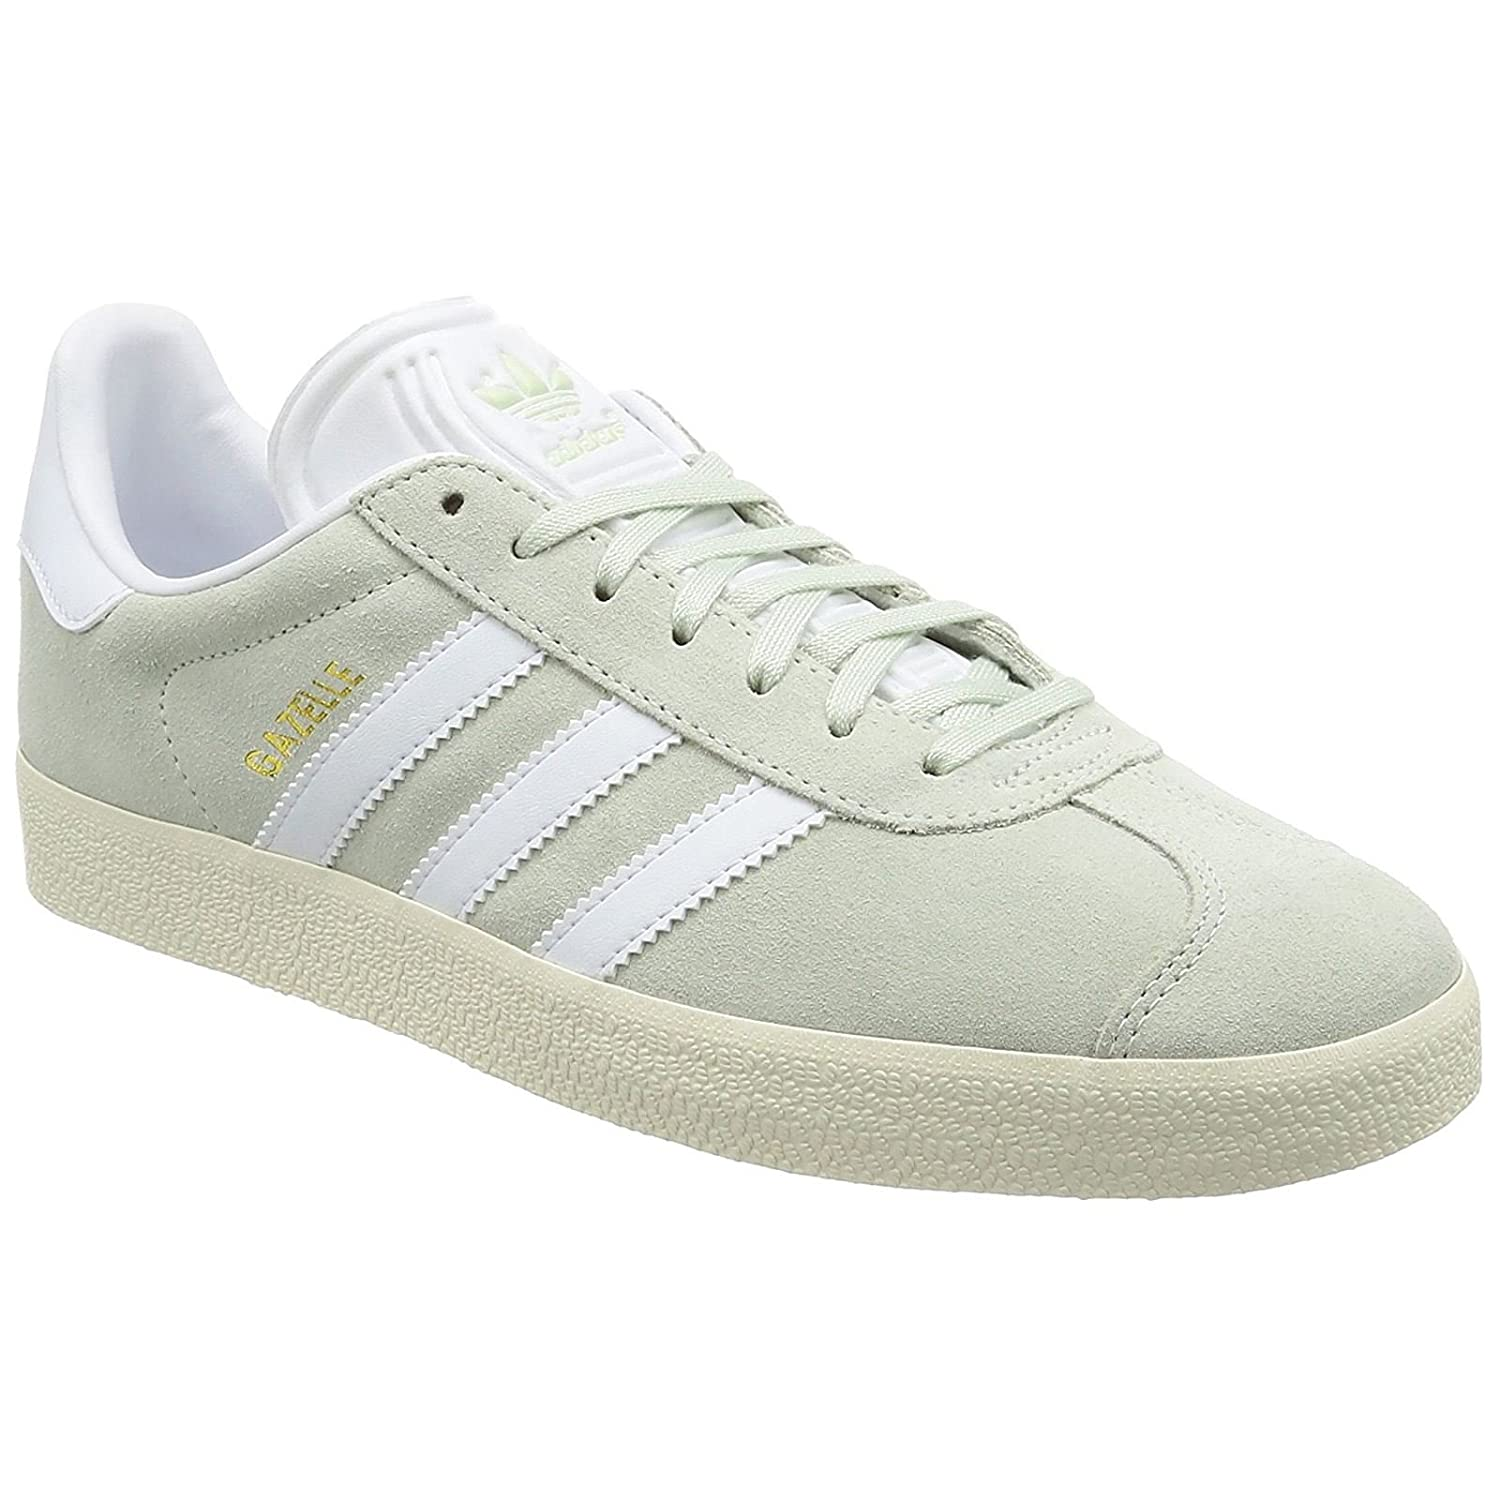 adidas Men's Gazelle Casual Sneakers B076MF85FZ 12 D(M) US|Linen Green Footwear White